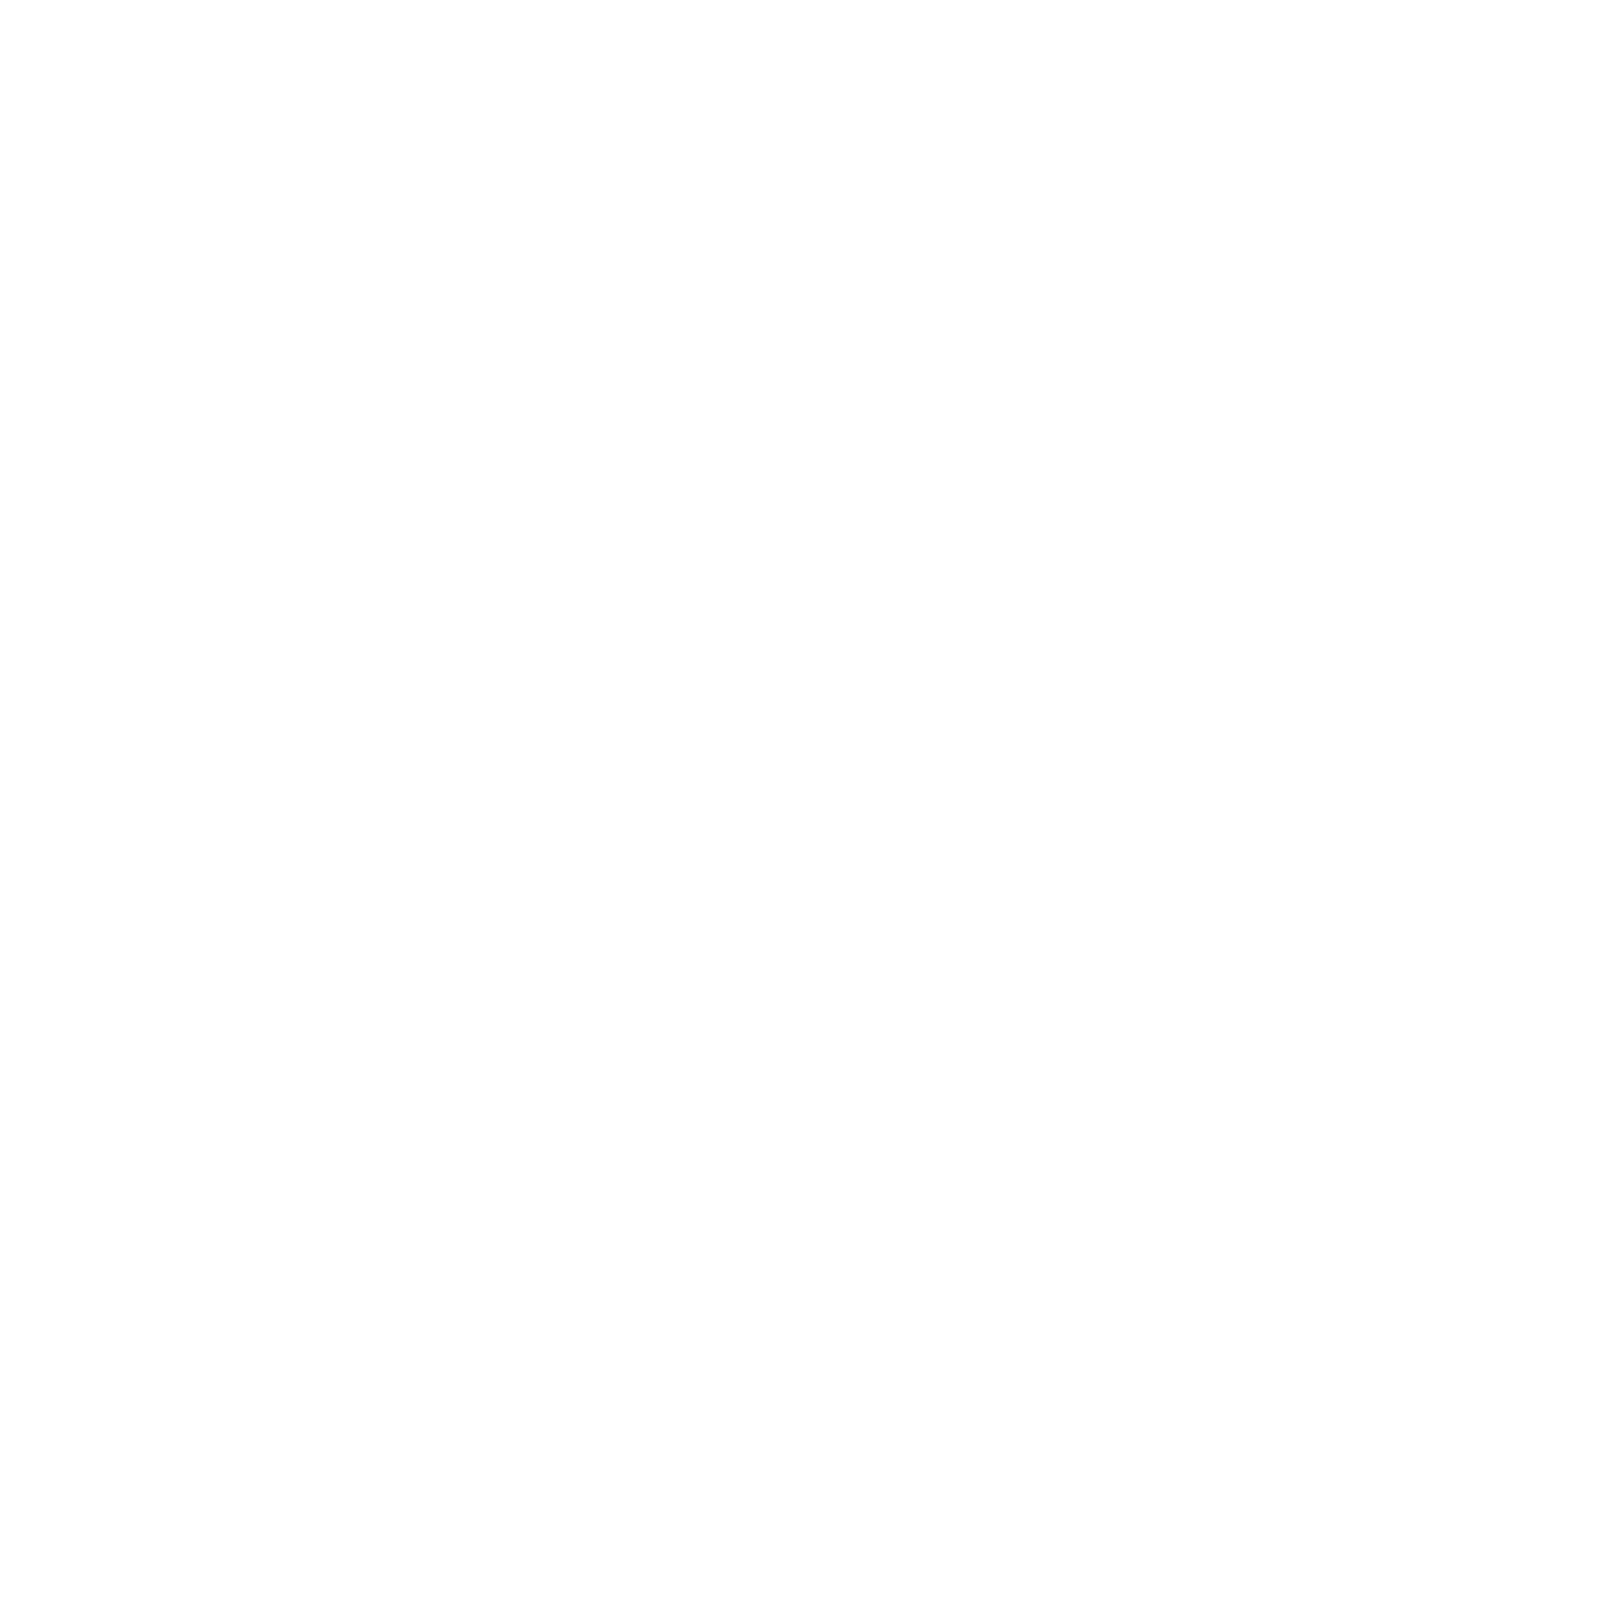 nordic-capital-project-logo